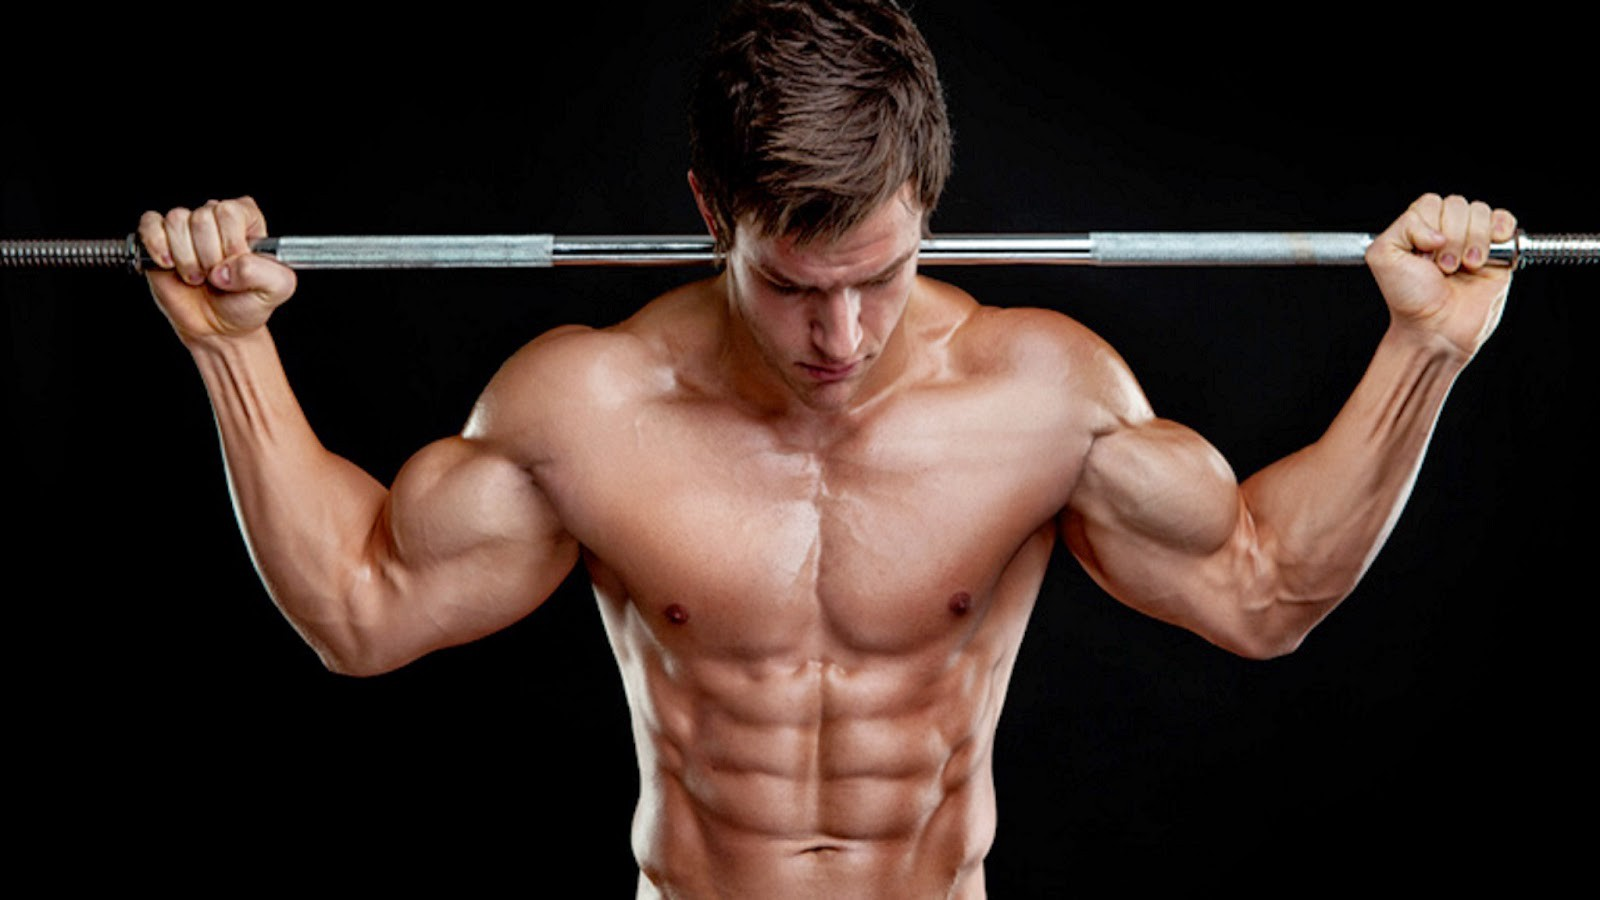 10 Amazing Bodybuilding Exercises to Help You Get The Perfect Body